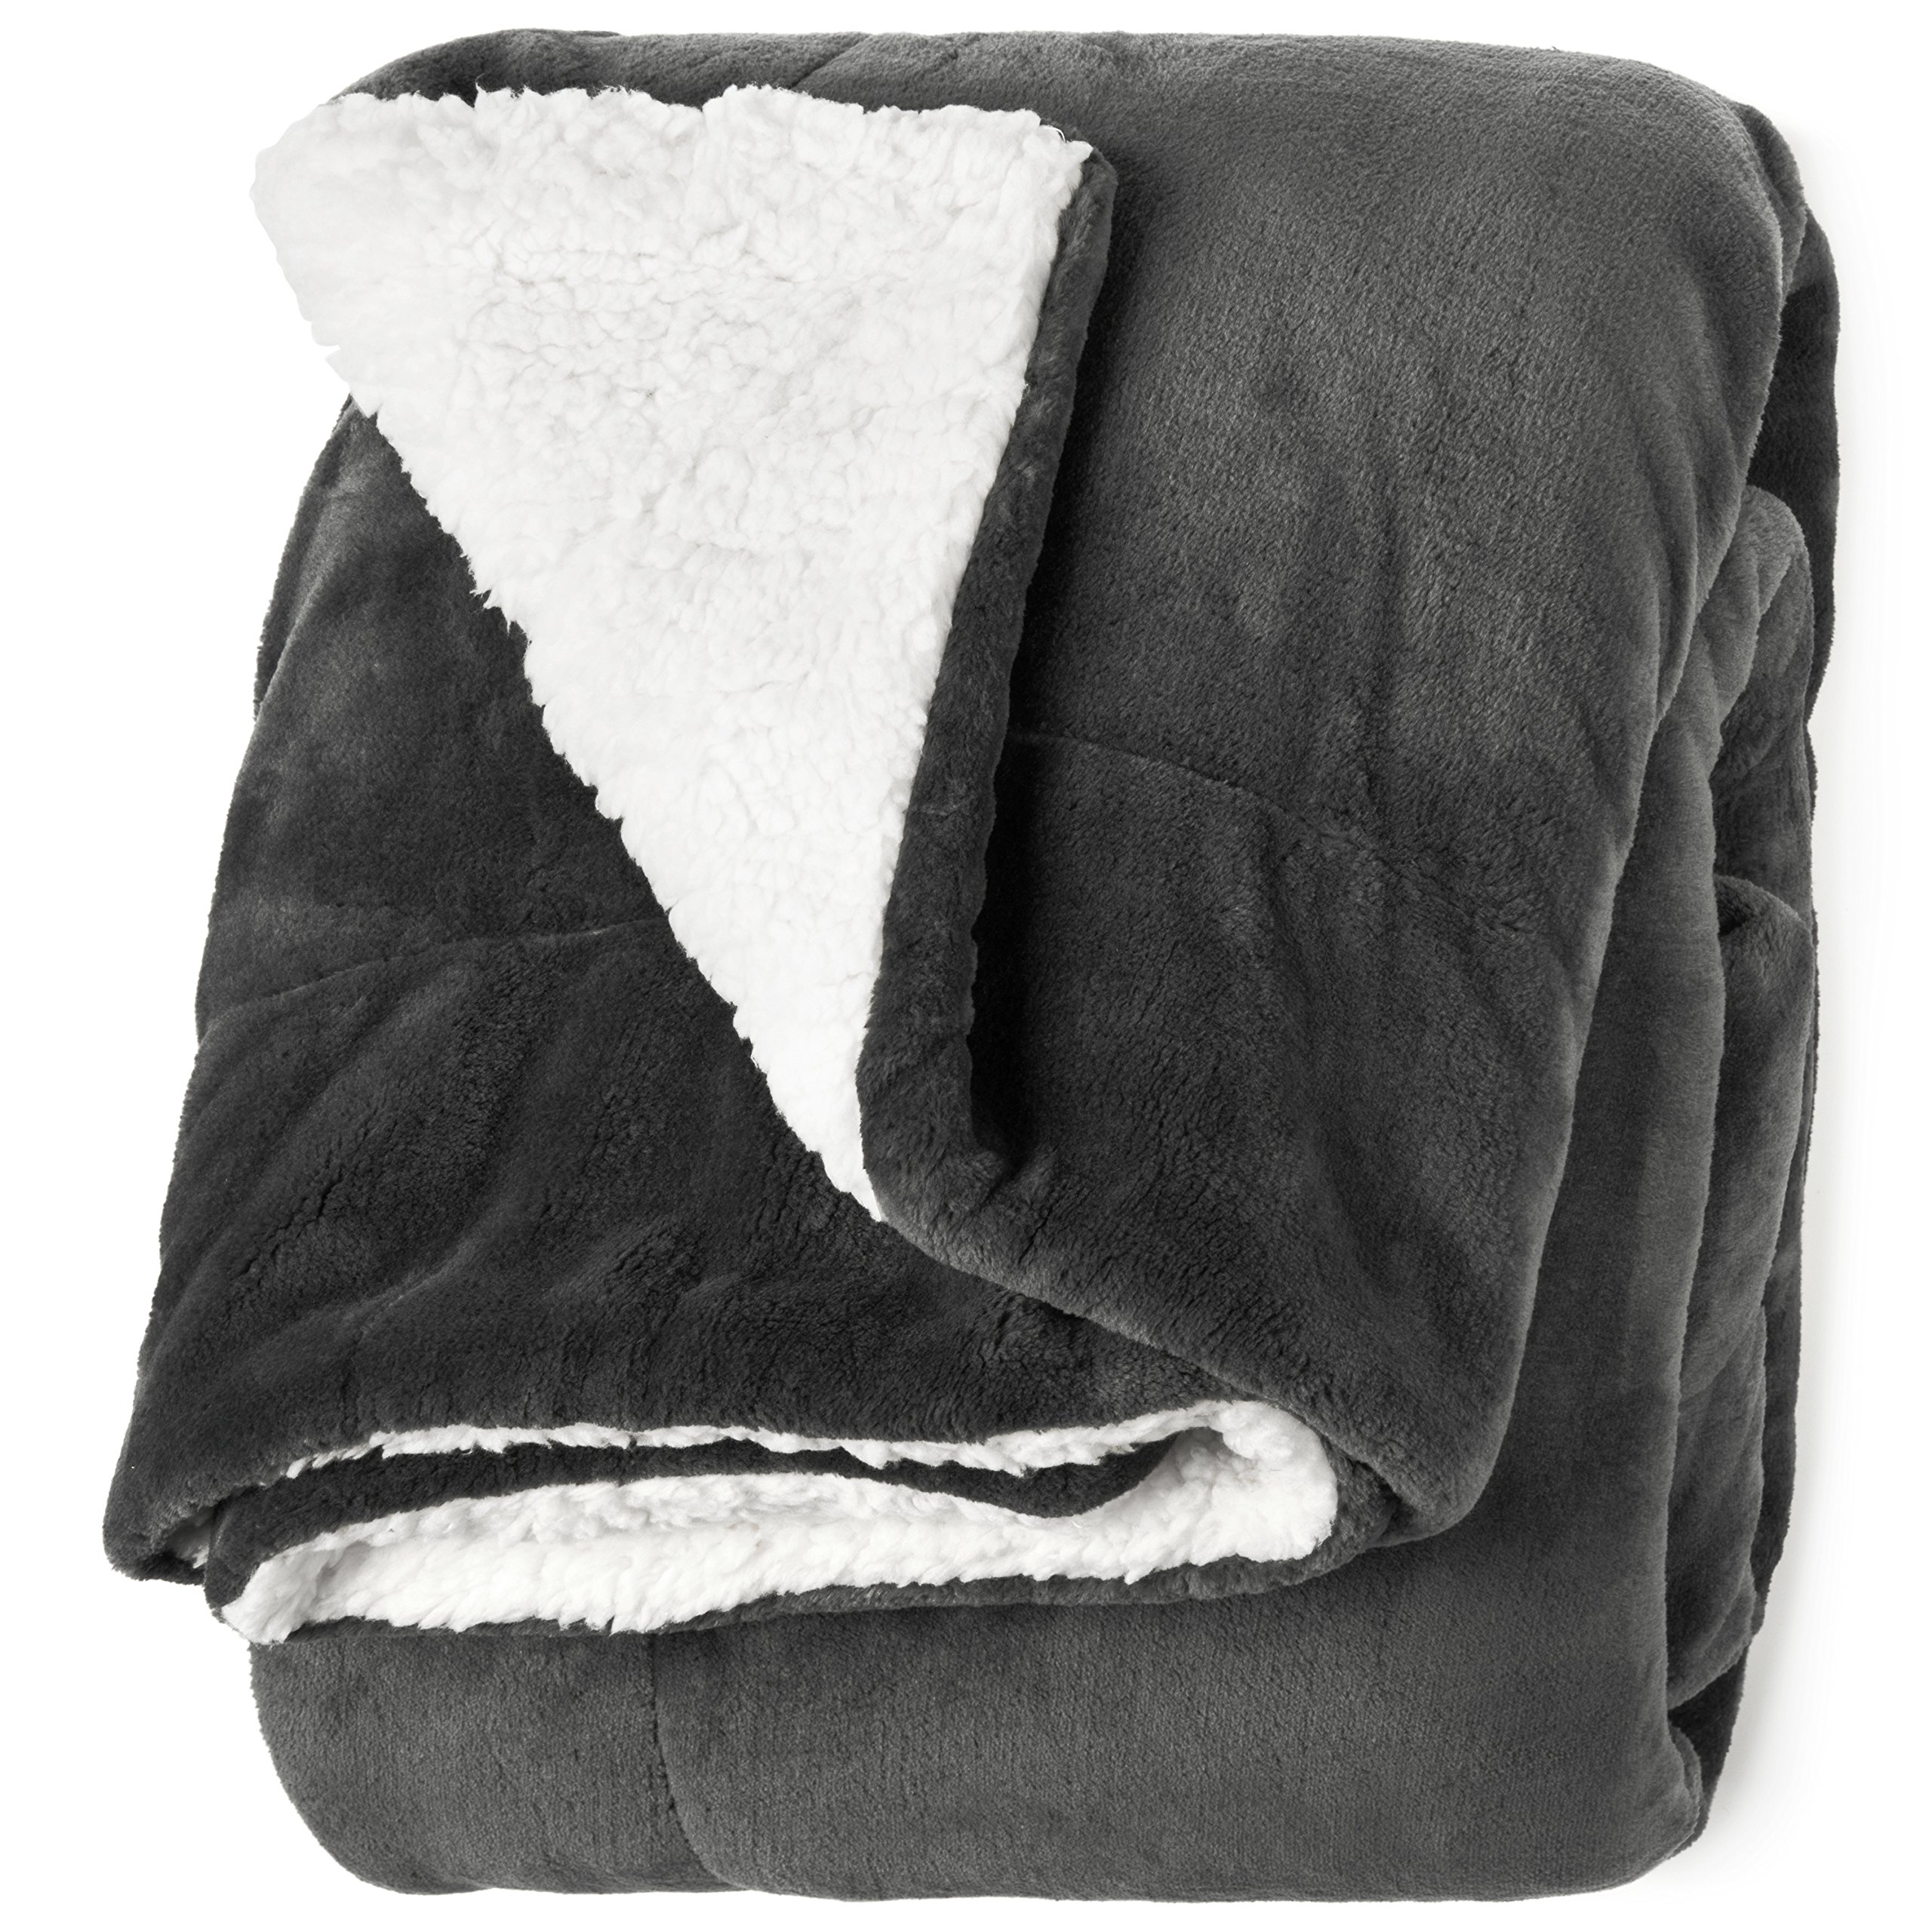 Life Comfort Microfiber Plush Polyester 60''x70'' Large All Season Blanket for Bed or Couch Ultimate Sherpa Throw, Gray